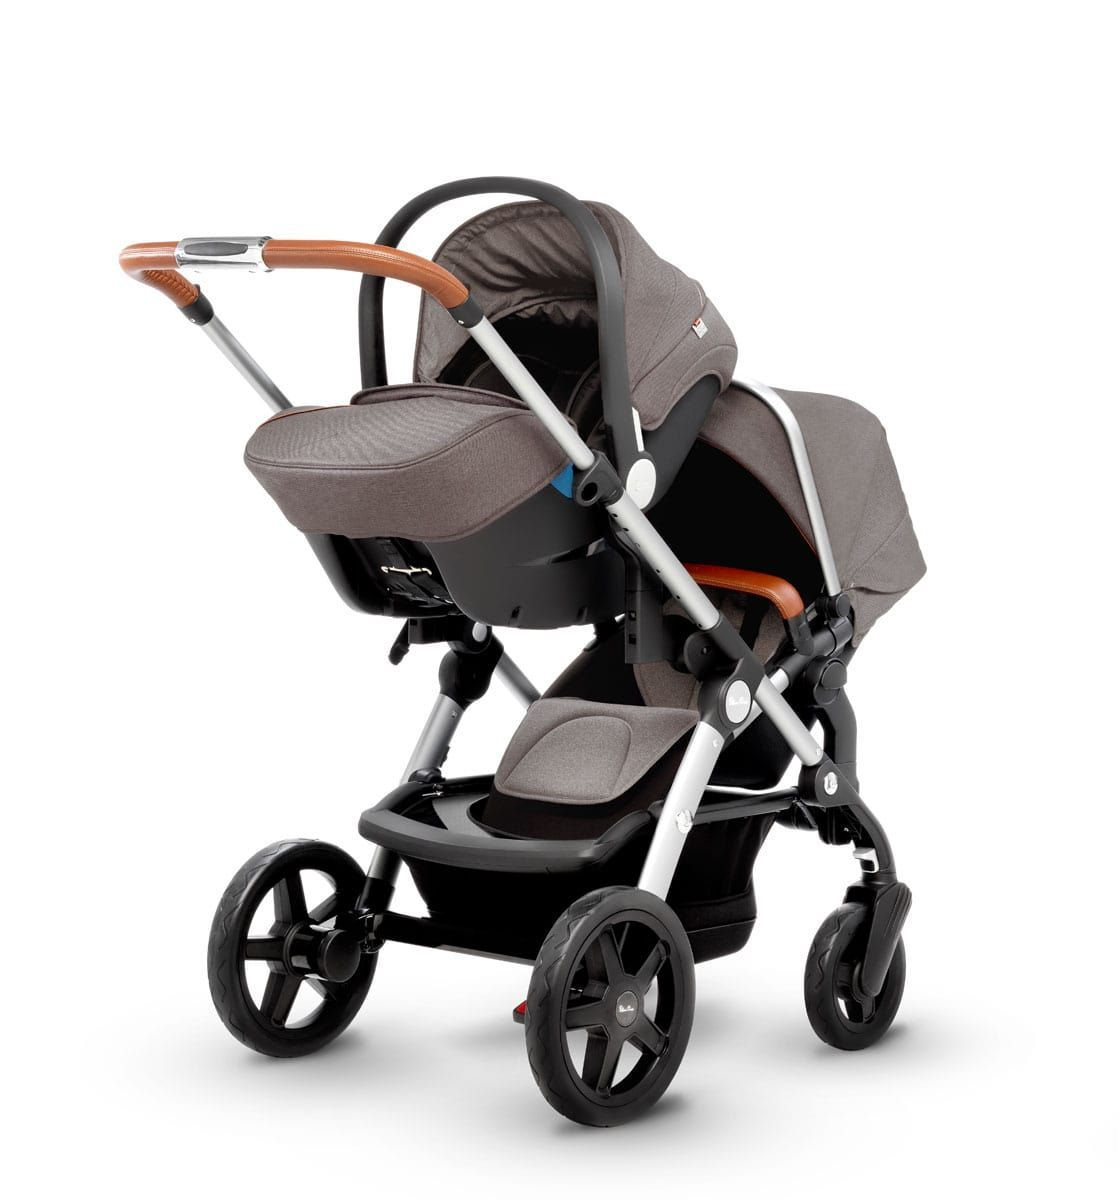 8d2690d032c Silver Cross Wave Stroller - Sable - Free Shipping - No Tax